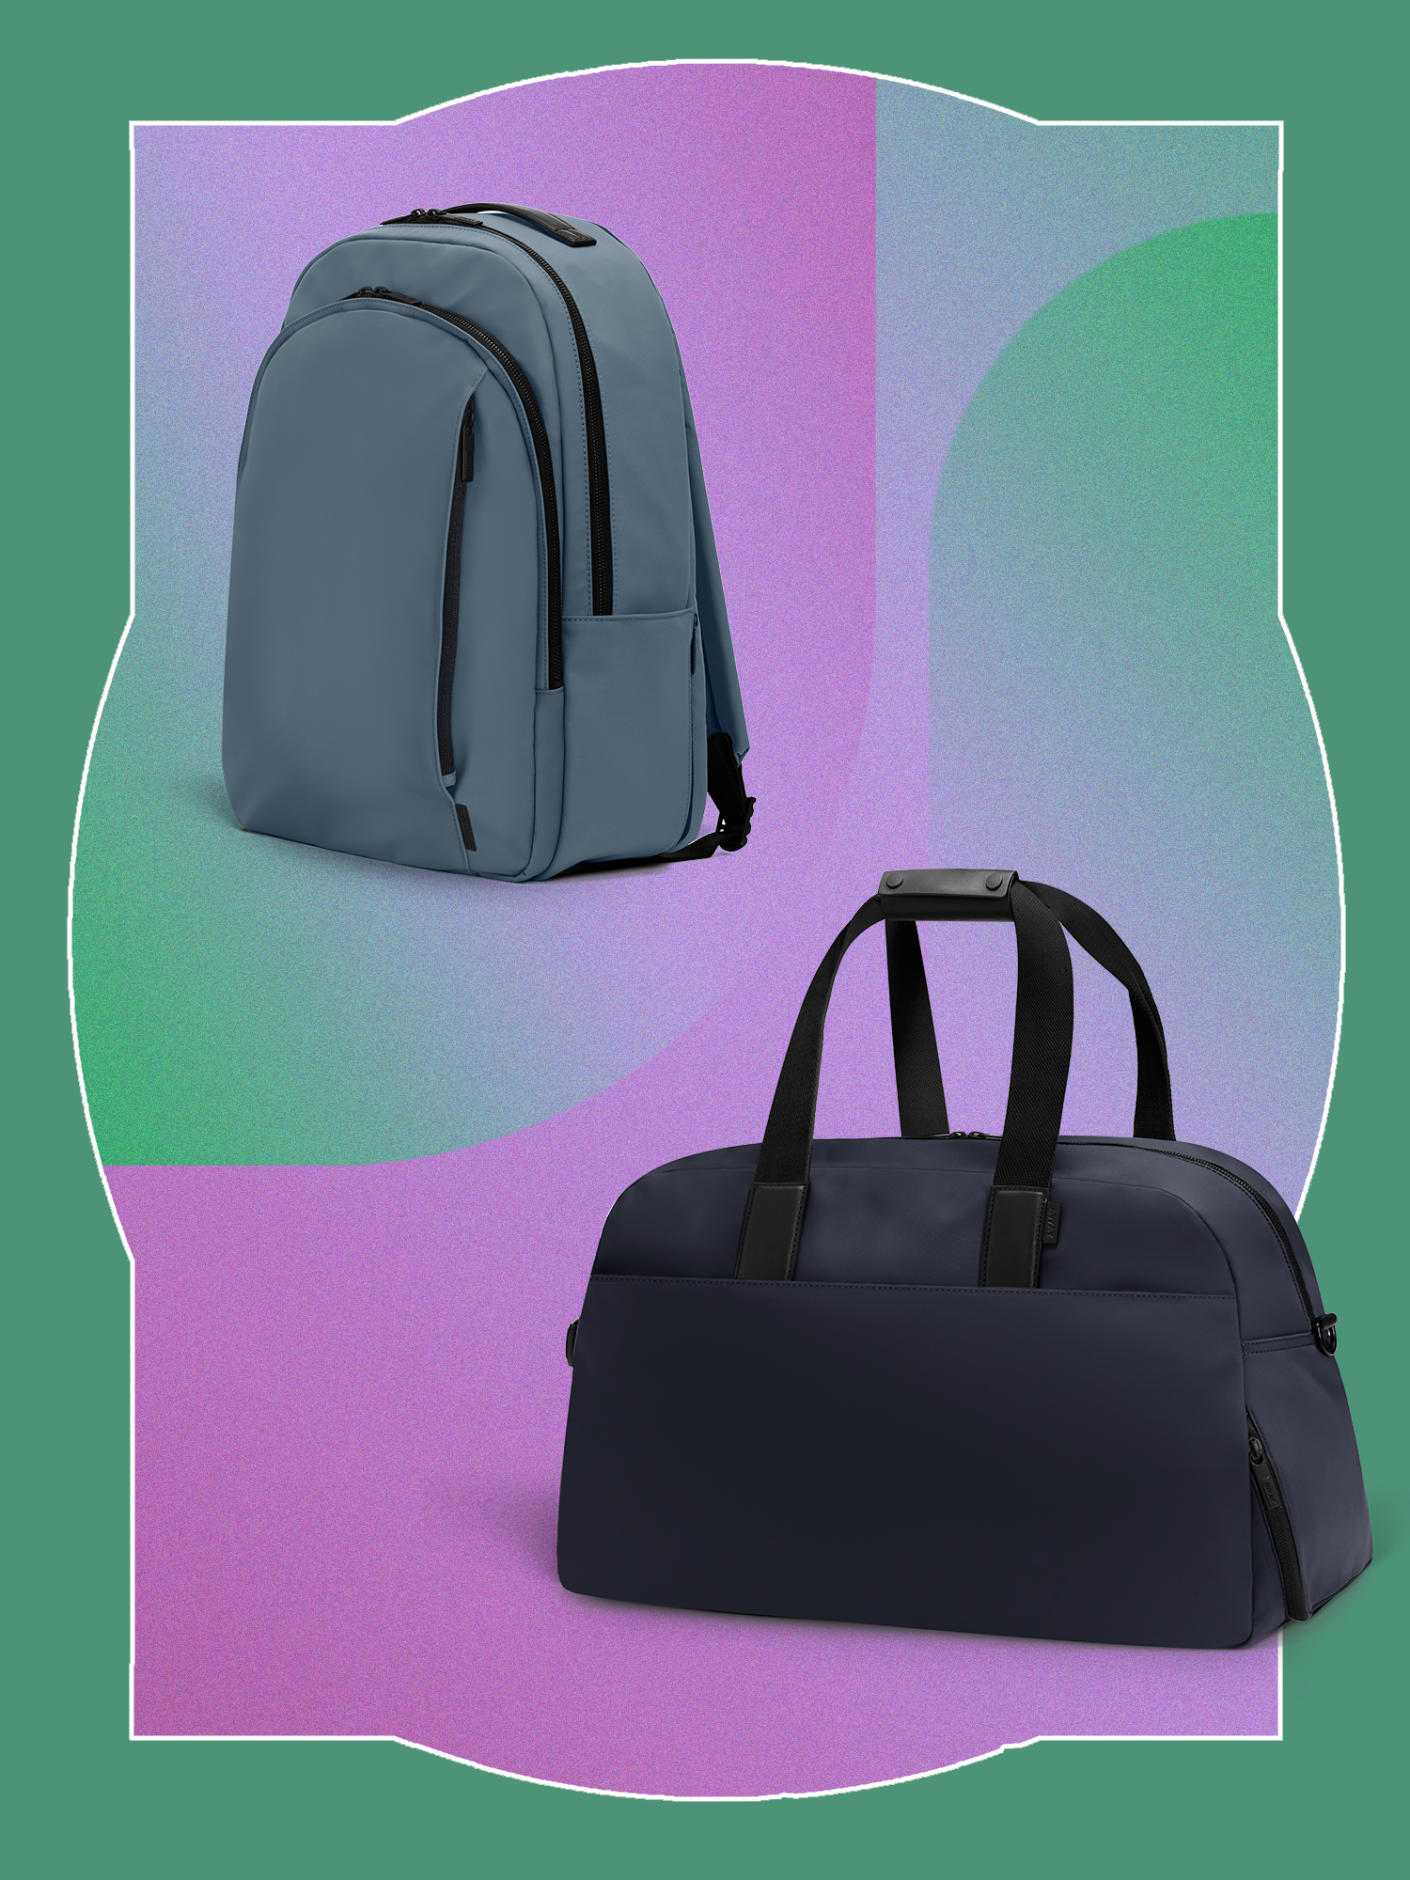 The Backpack in Coast nylon and The Weekender in Navy nylon